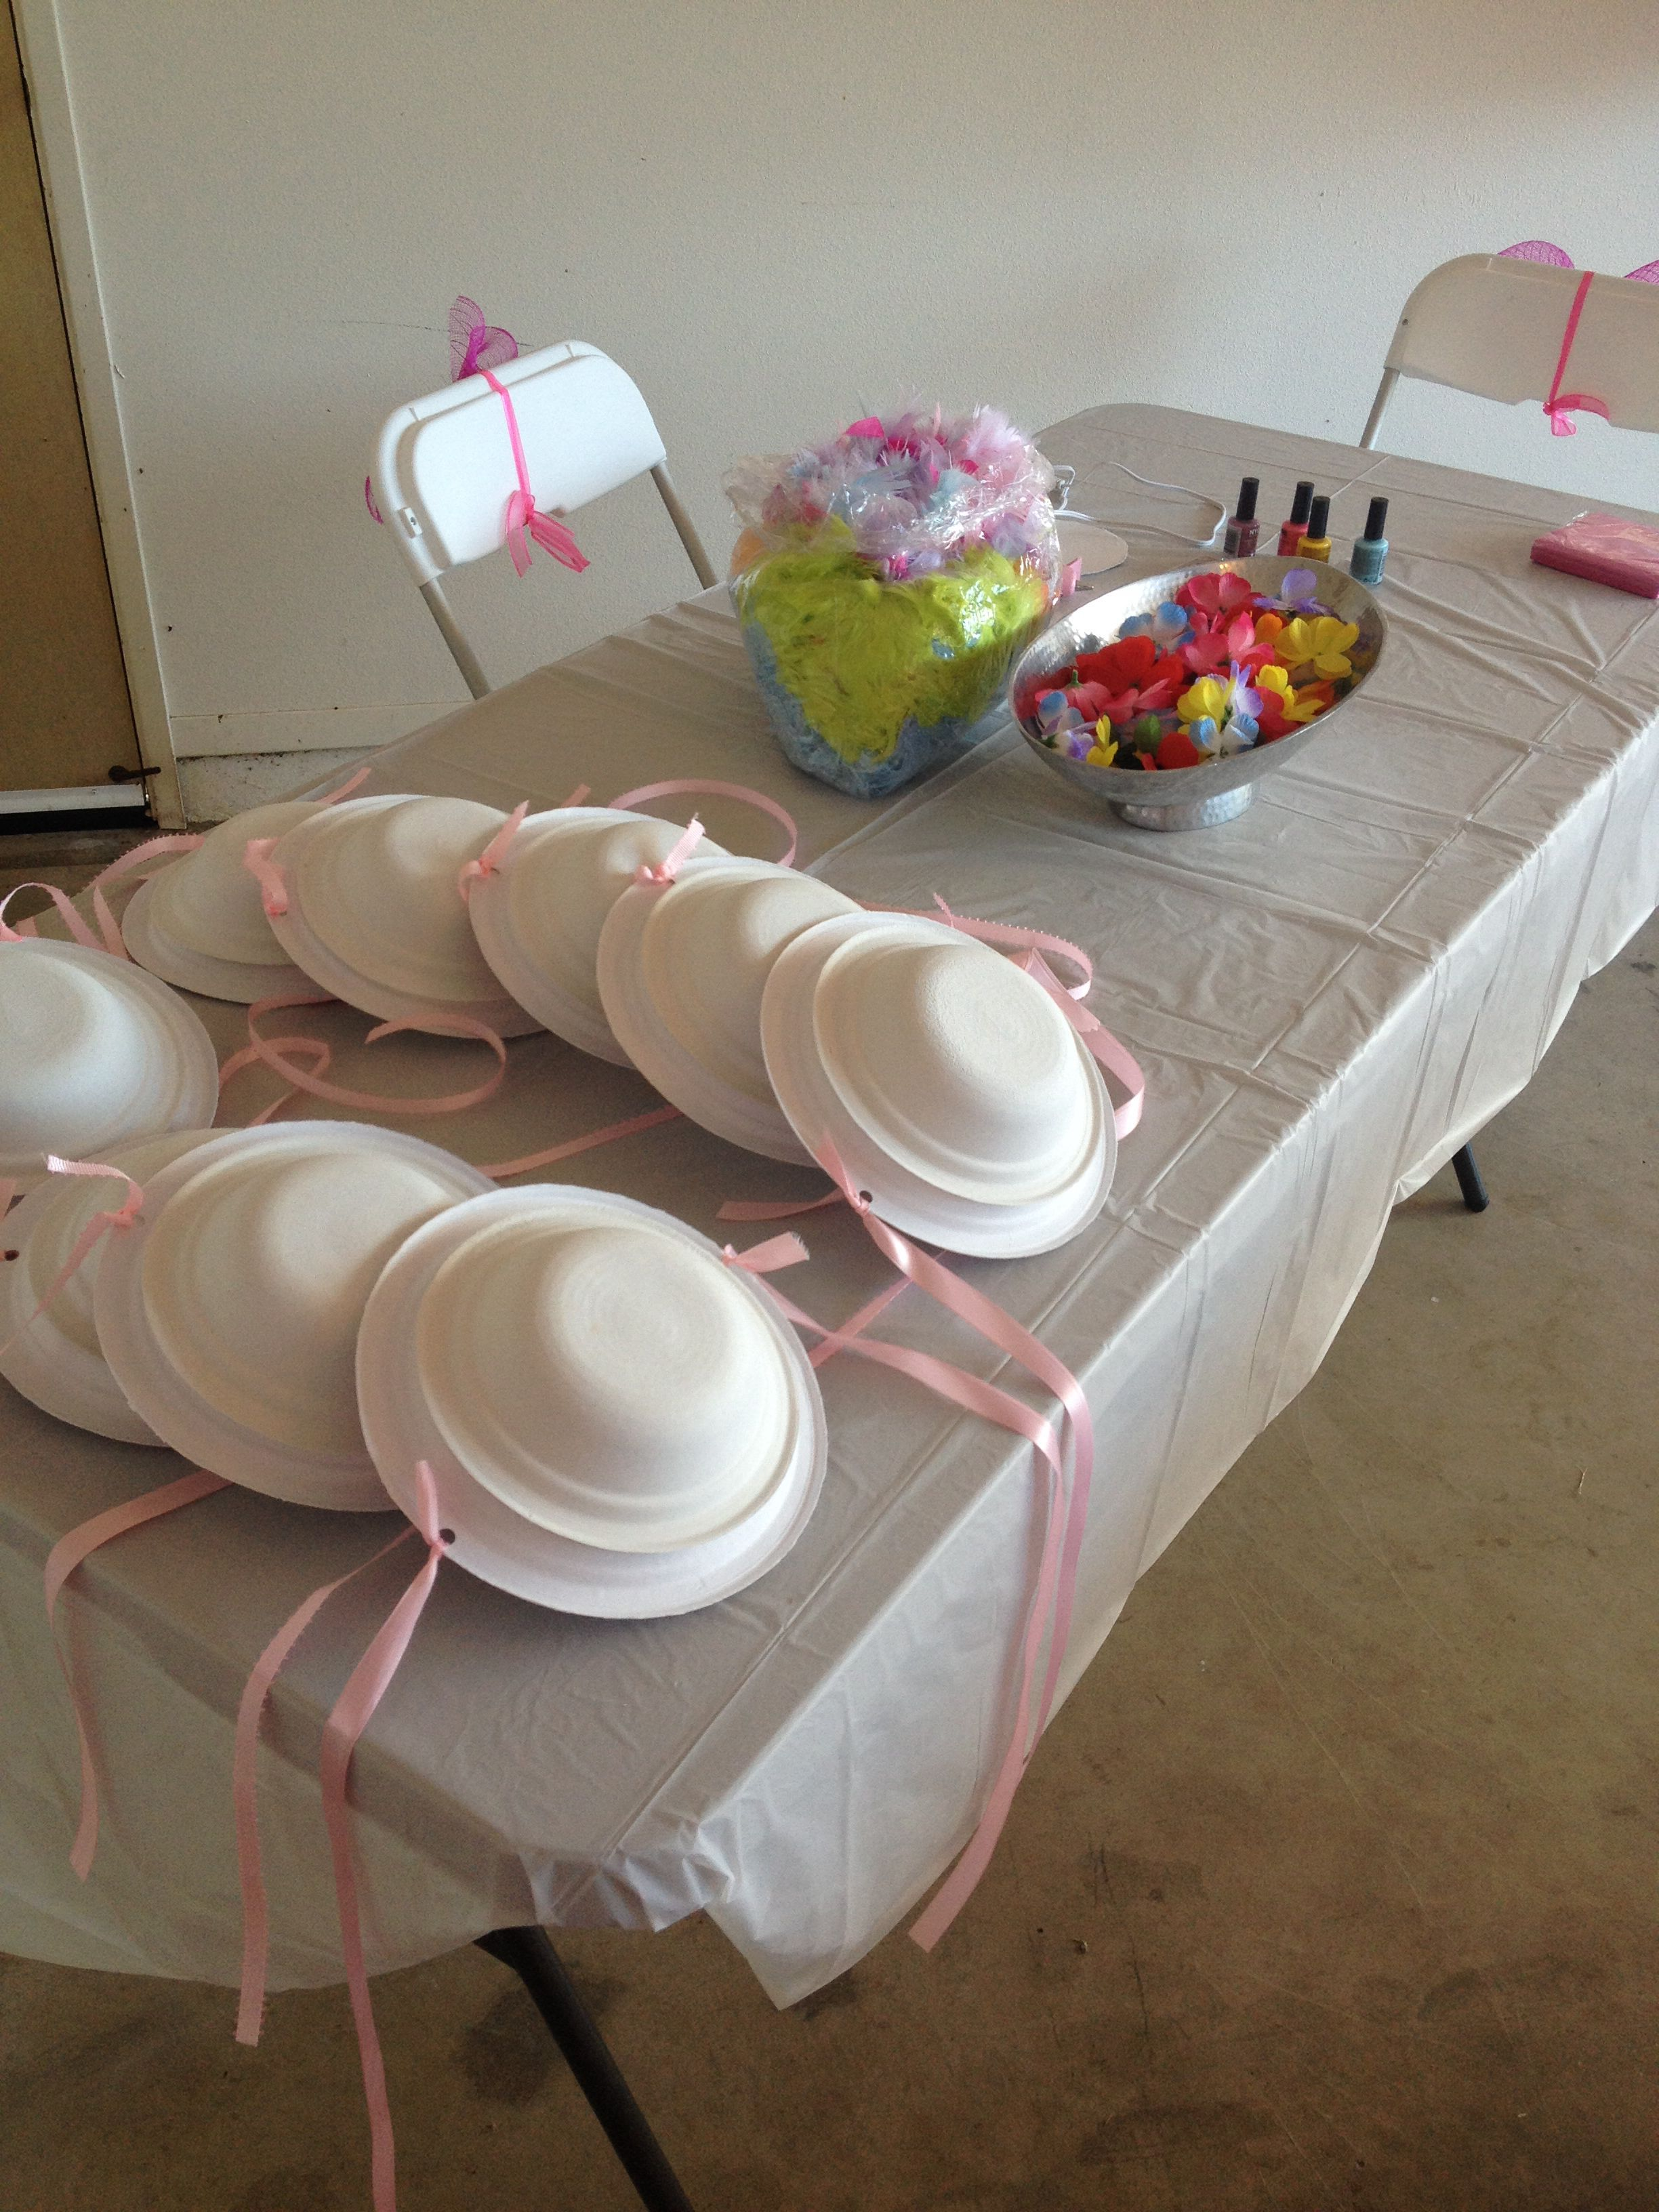 Tea Party Hat Station The Hats Look Like Plates And Bowls With